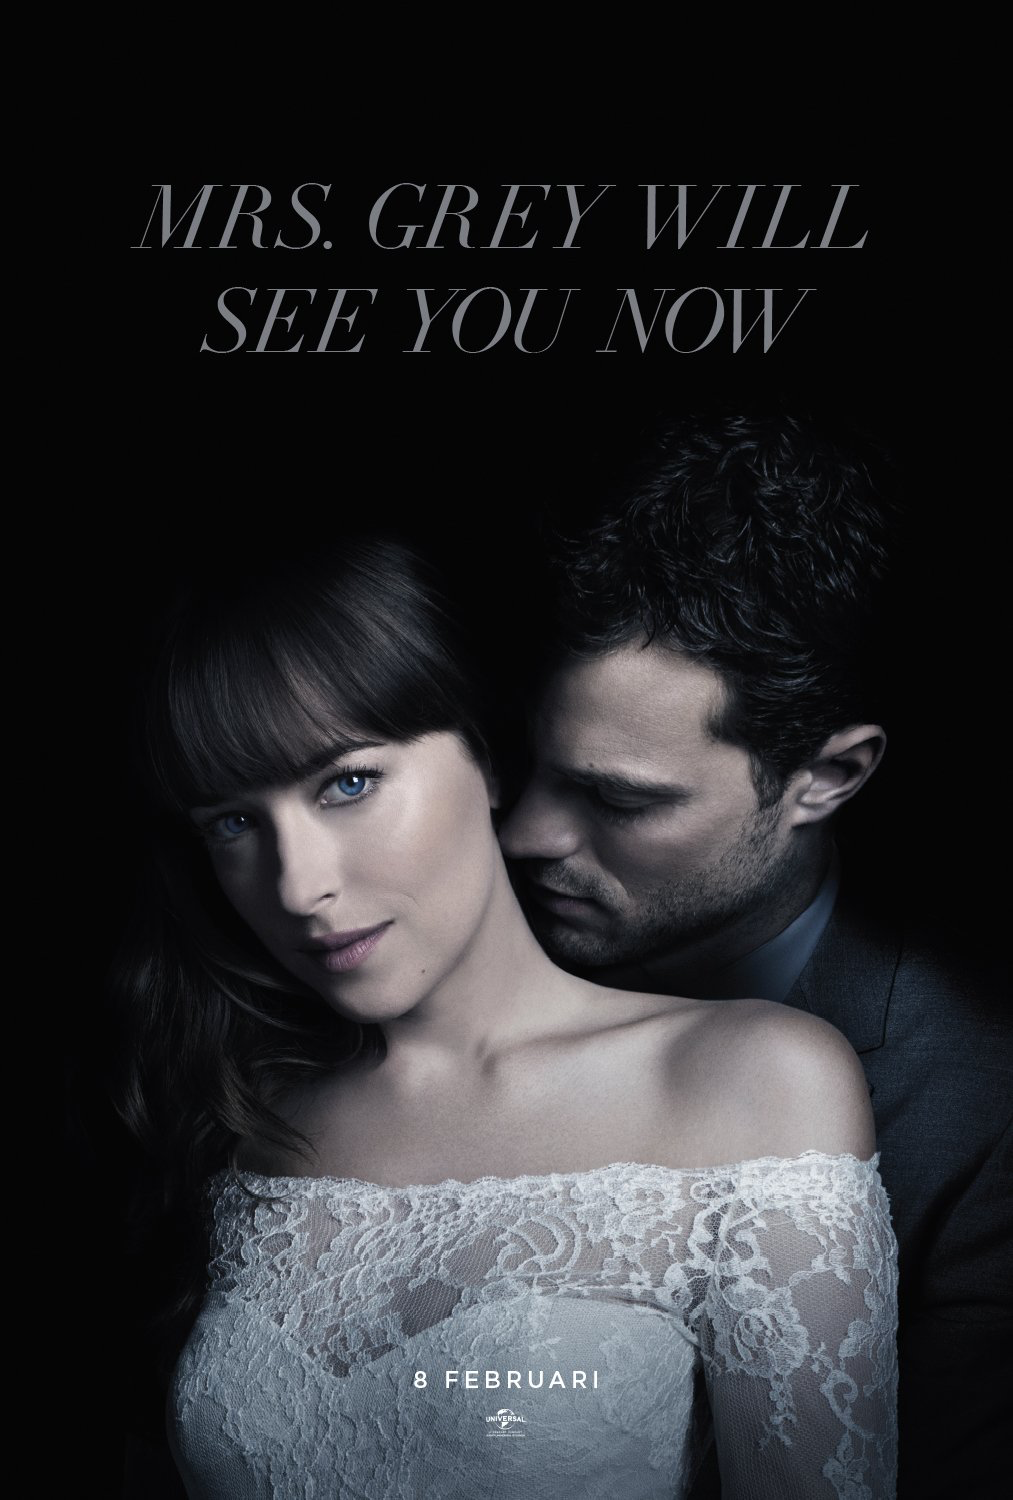 Nonton Film Fifty Shades Of Darker : nonton, fifty, shades, darker, Galriane, Cândido, Shades, ❤️, Streaming, Movies, Free,, Fifty, Shades,